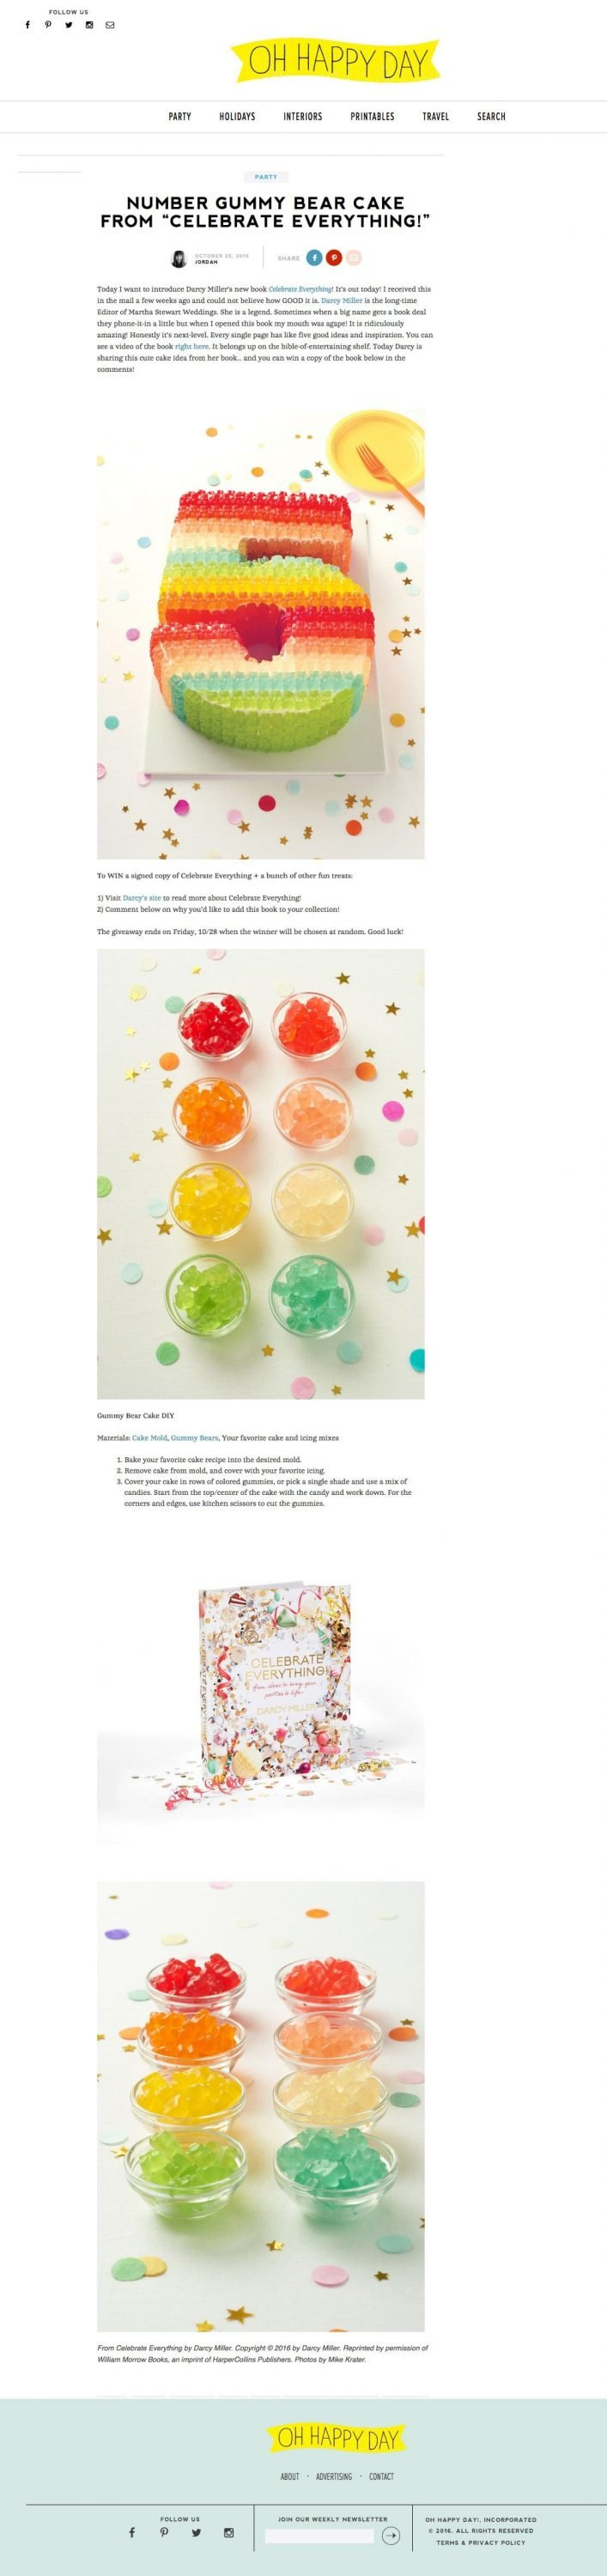 number-gummy-bear-cake-from-celebrate-everything-web